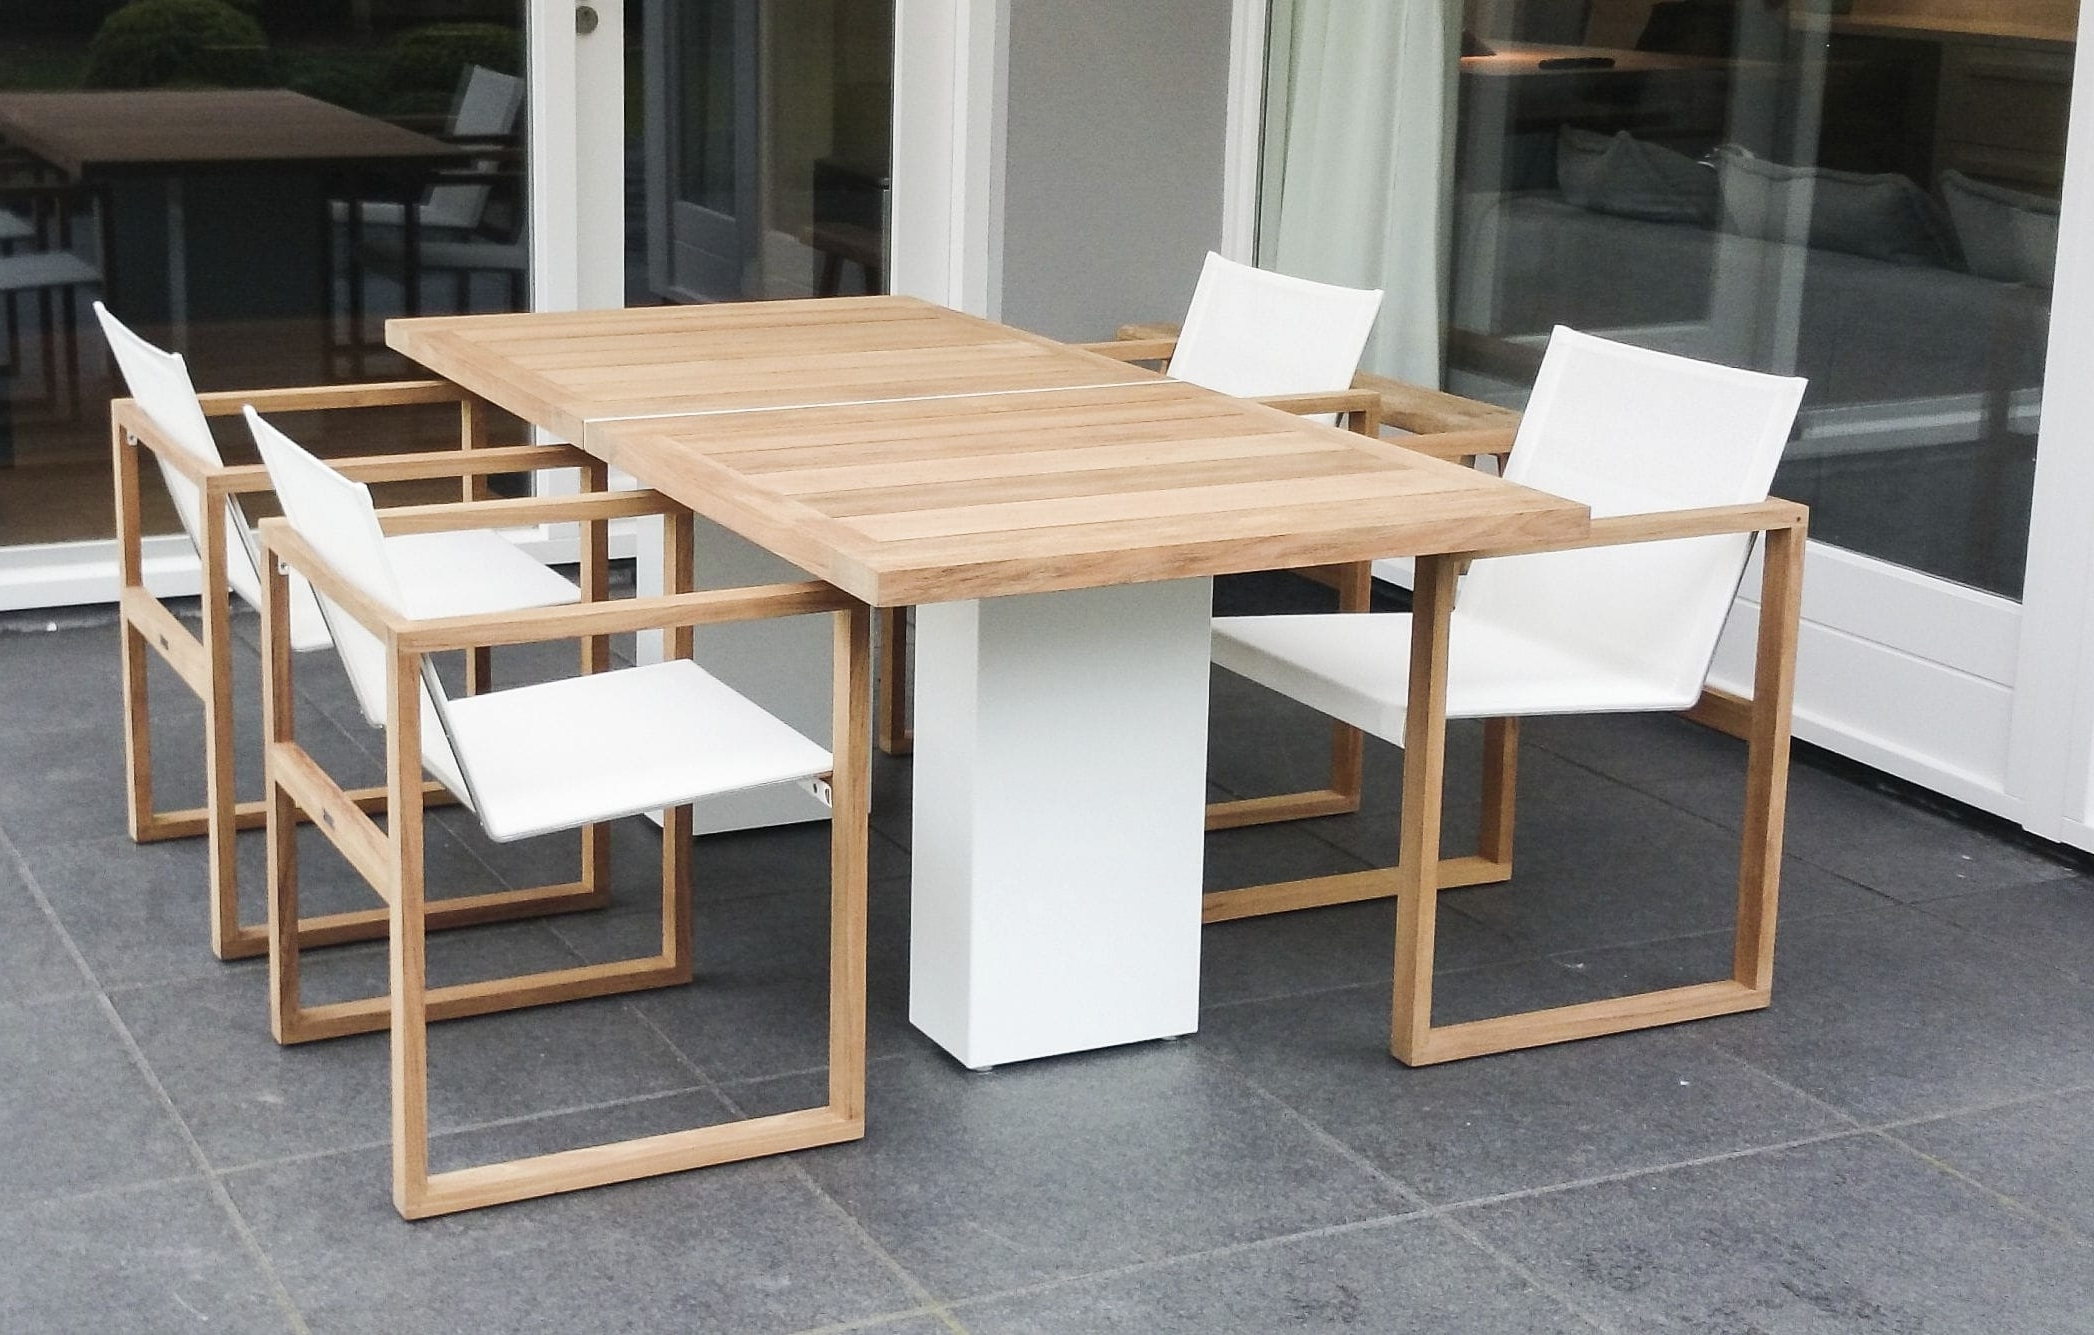 Newest Brushed Metal Dining Tables In Contemporary Dining Table / Teak / Polished Metal / Brushed (View 23 of 25)